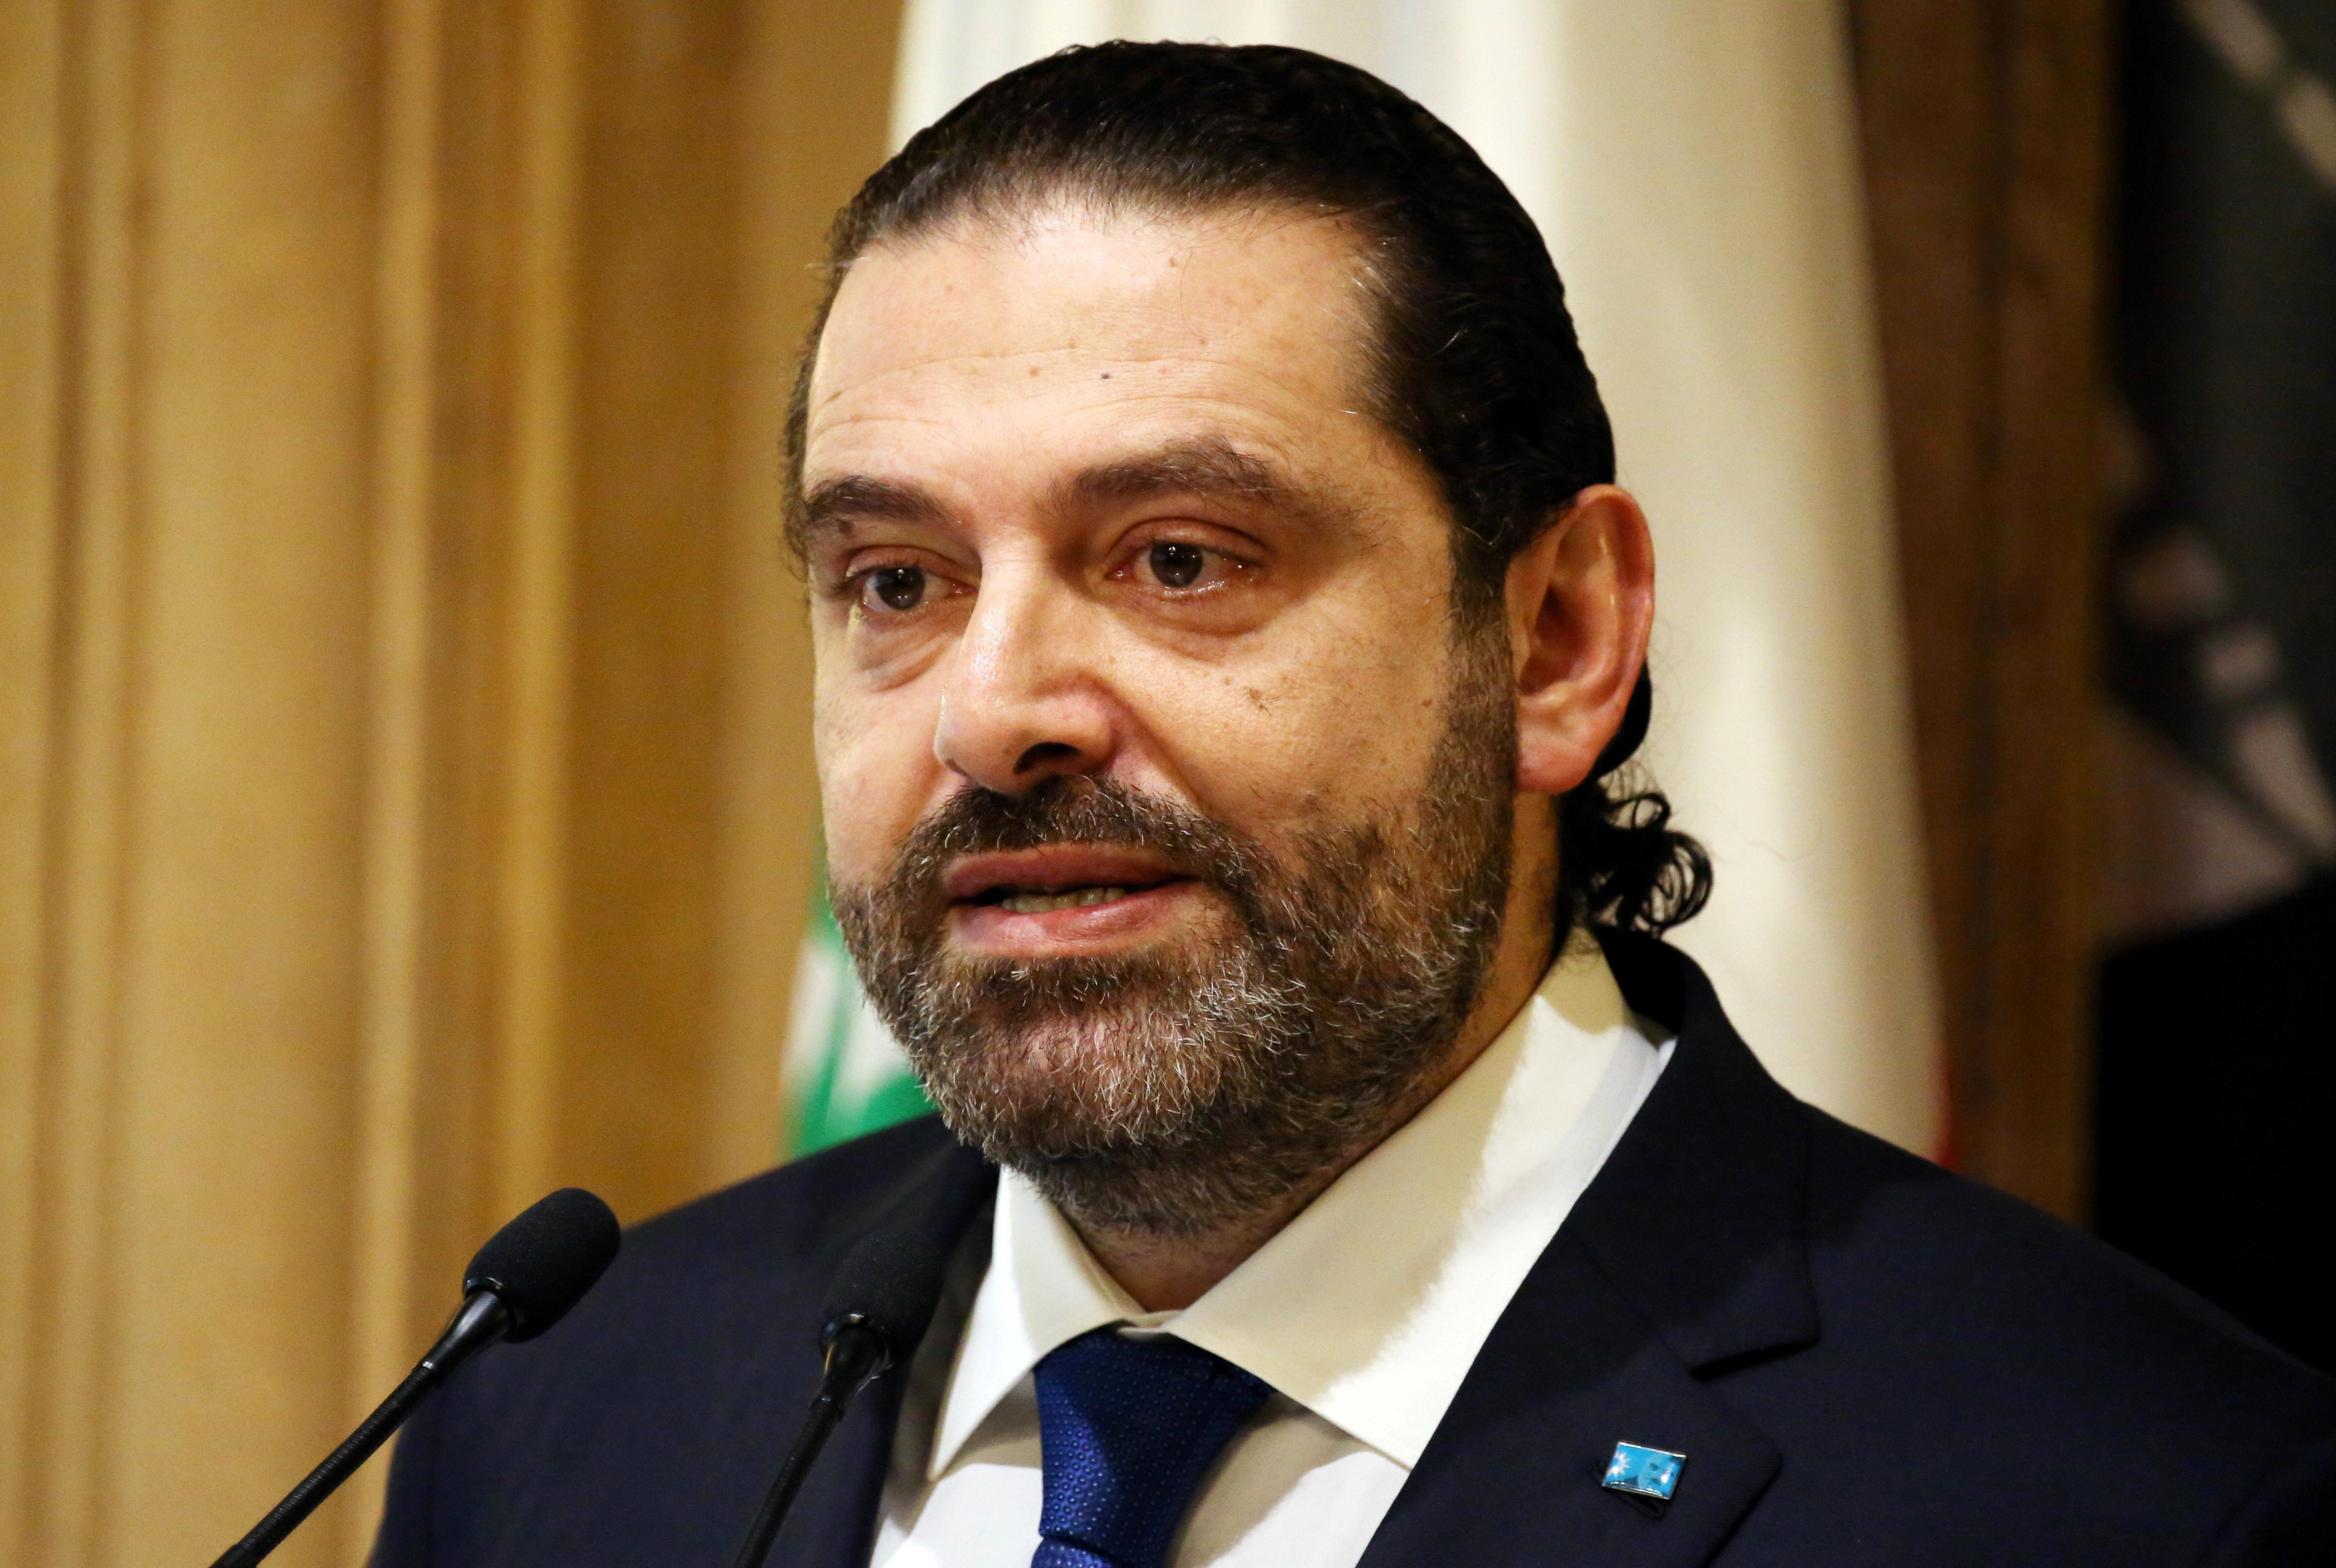 Lebanese cabinet to meet on Saturday